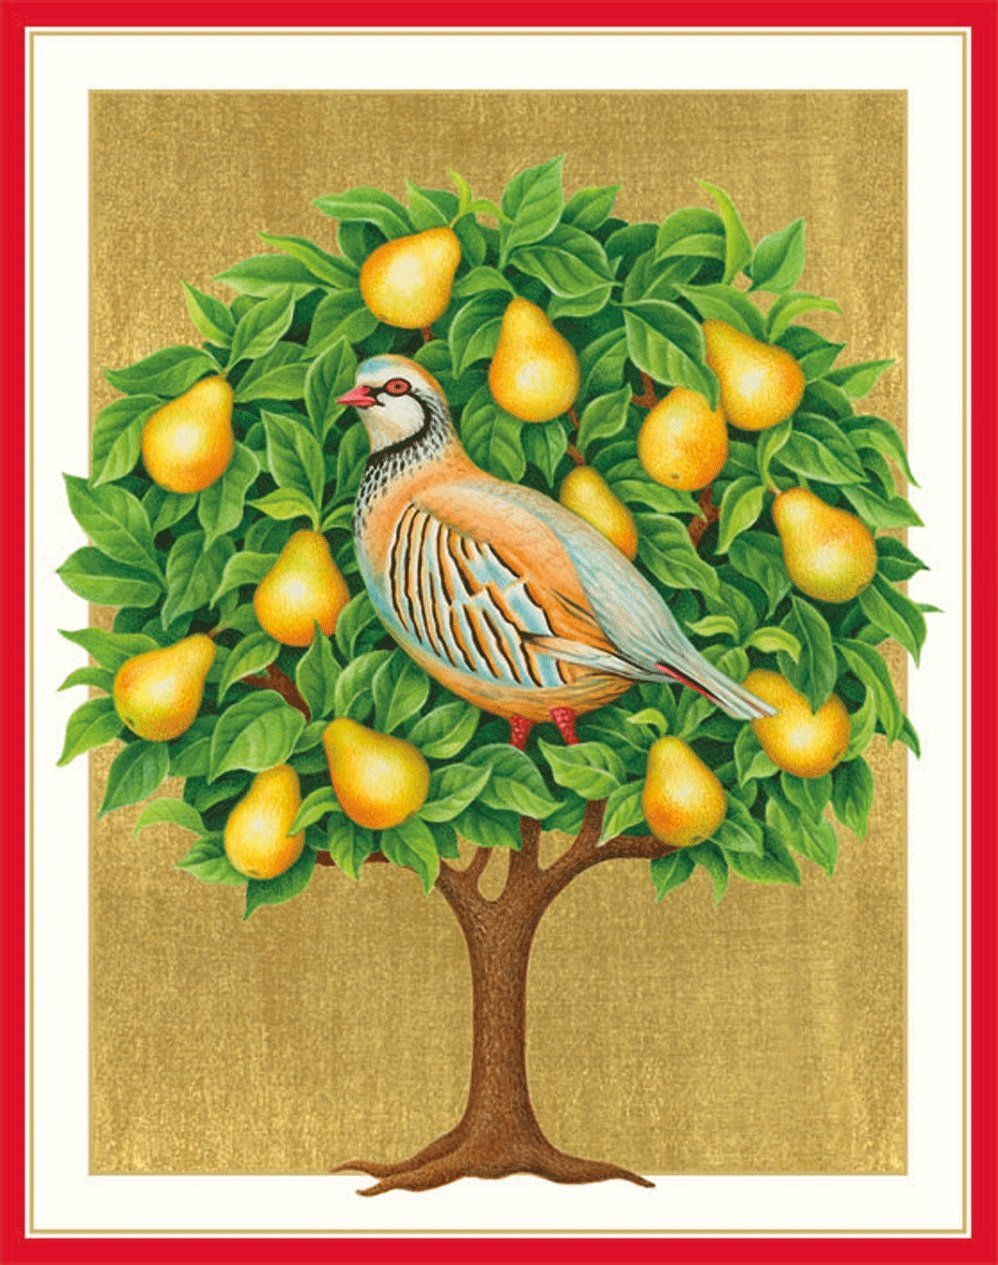 Cheap pear tree christmas find pear tree christmas deals on line at get quotations entertaining with caspari partridge in a pear tree christmas cards box of 16 kristyandbryce Gallery